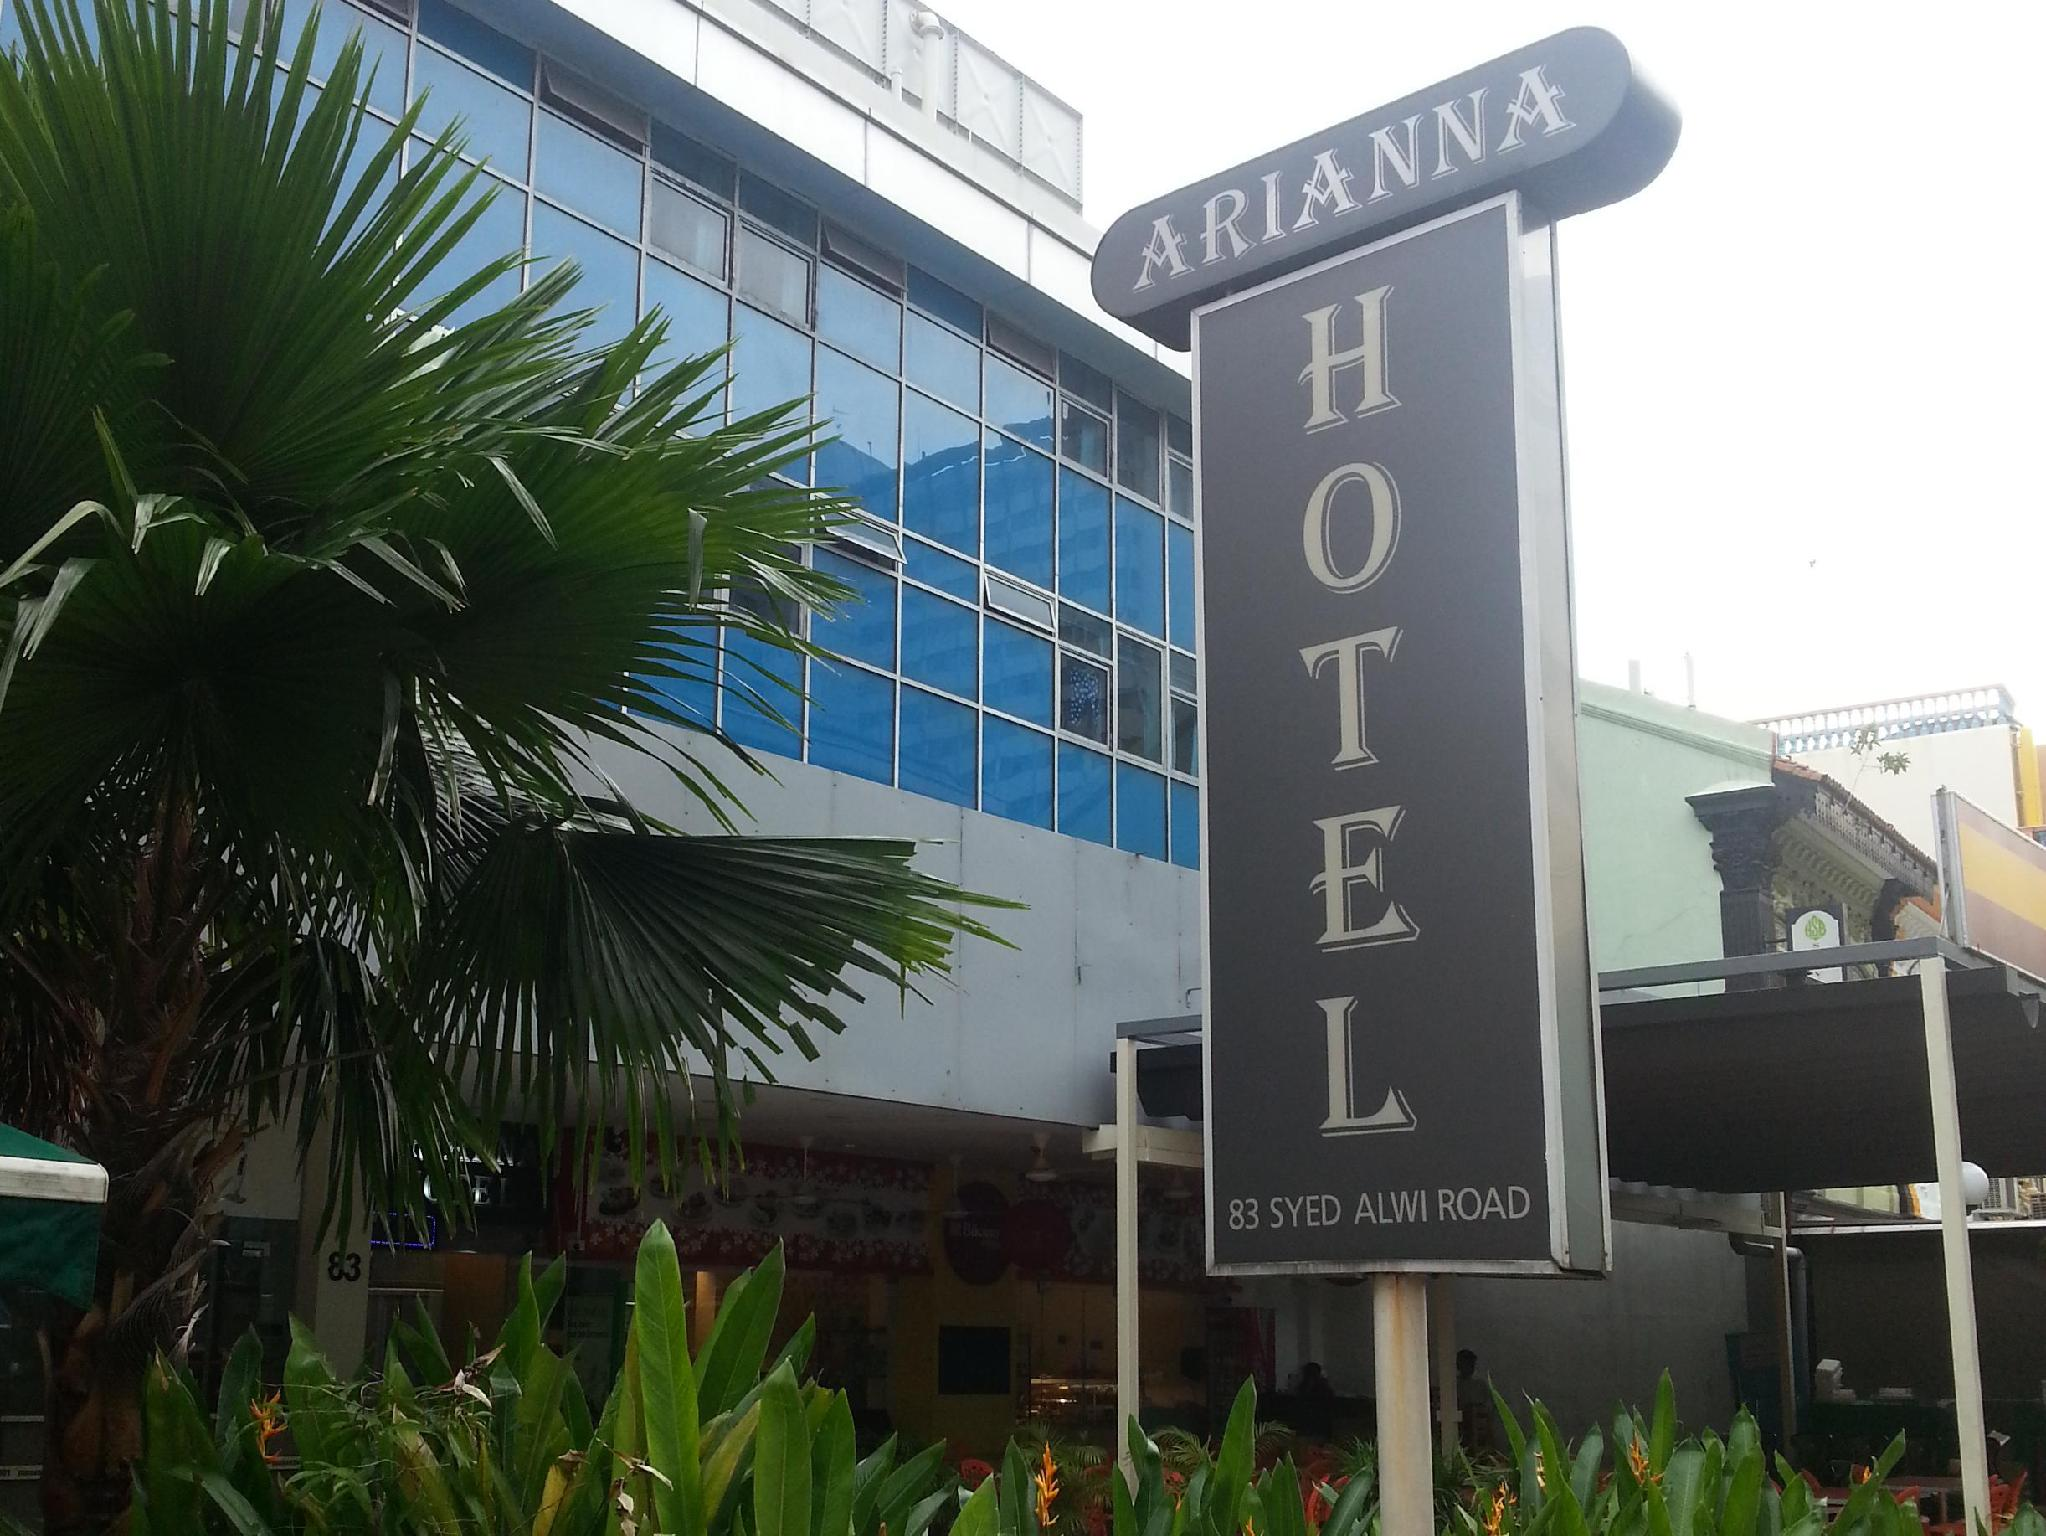 Arianna Hotel in Little India Singapore